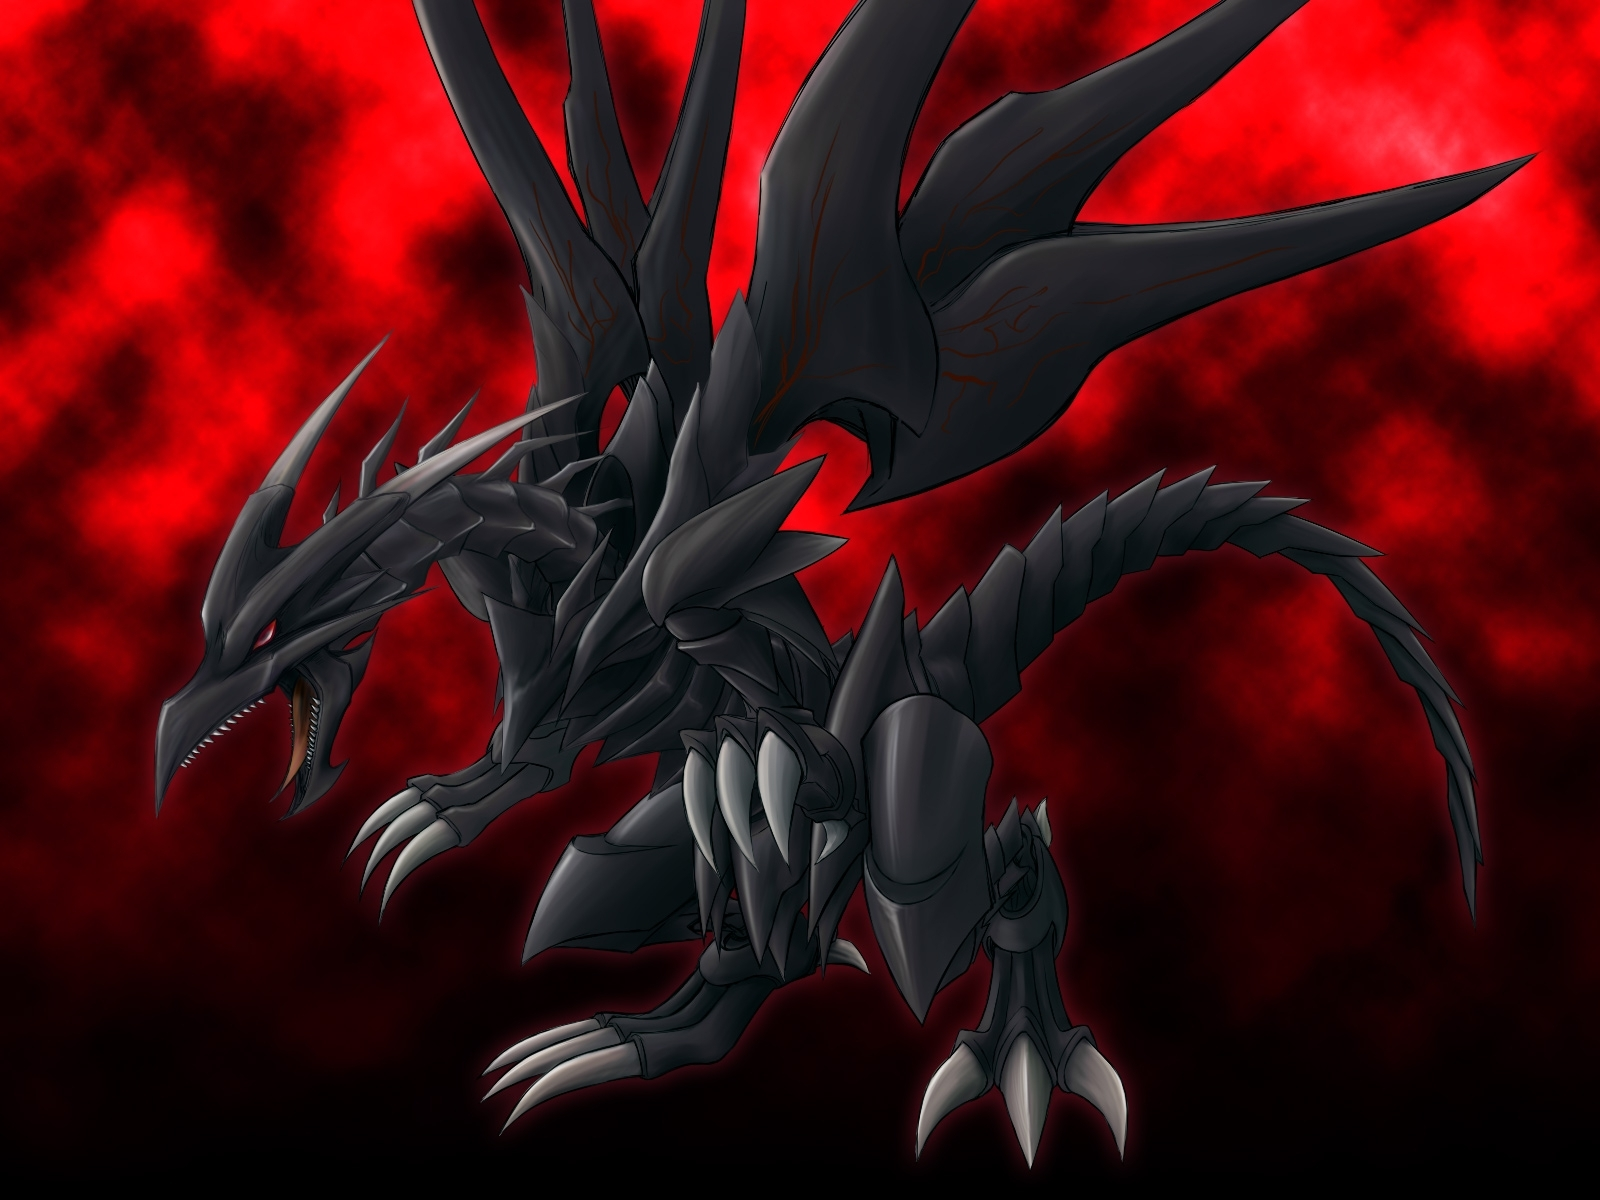 red eyes black dragon wallpaper - wallpaper dekstop